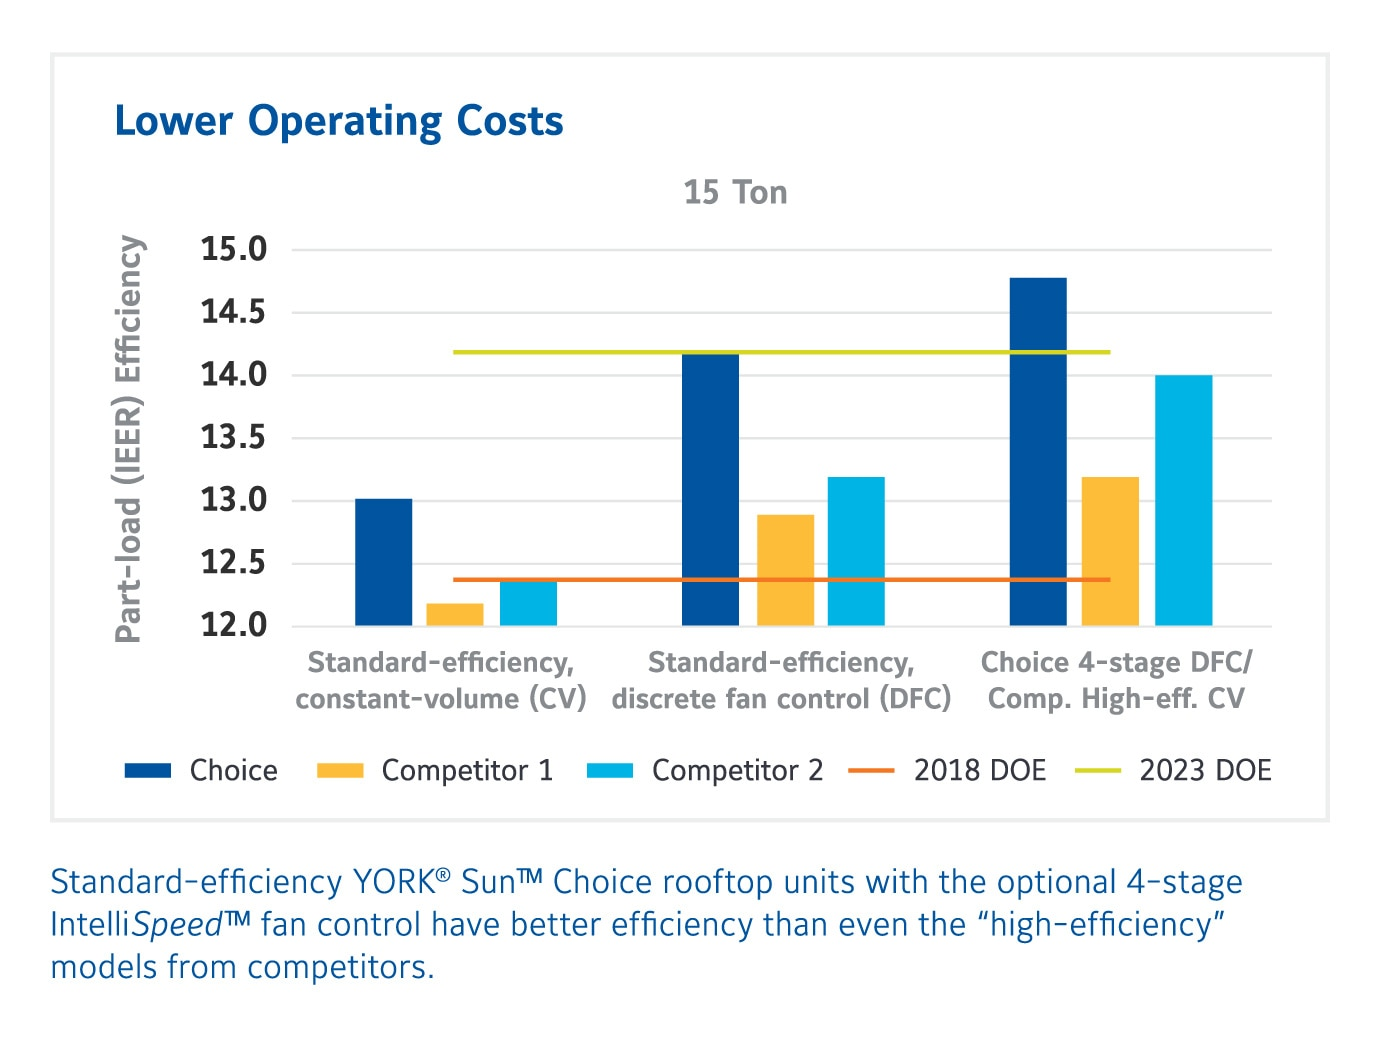 Bar chart showing how the YORK Sun Choice rooftop unit achieves a higher part-load (IEER) efficiency than competitors.